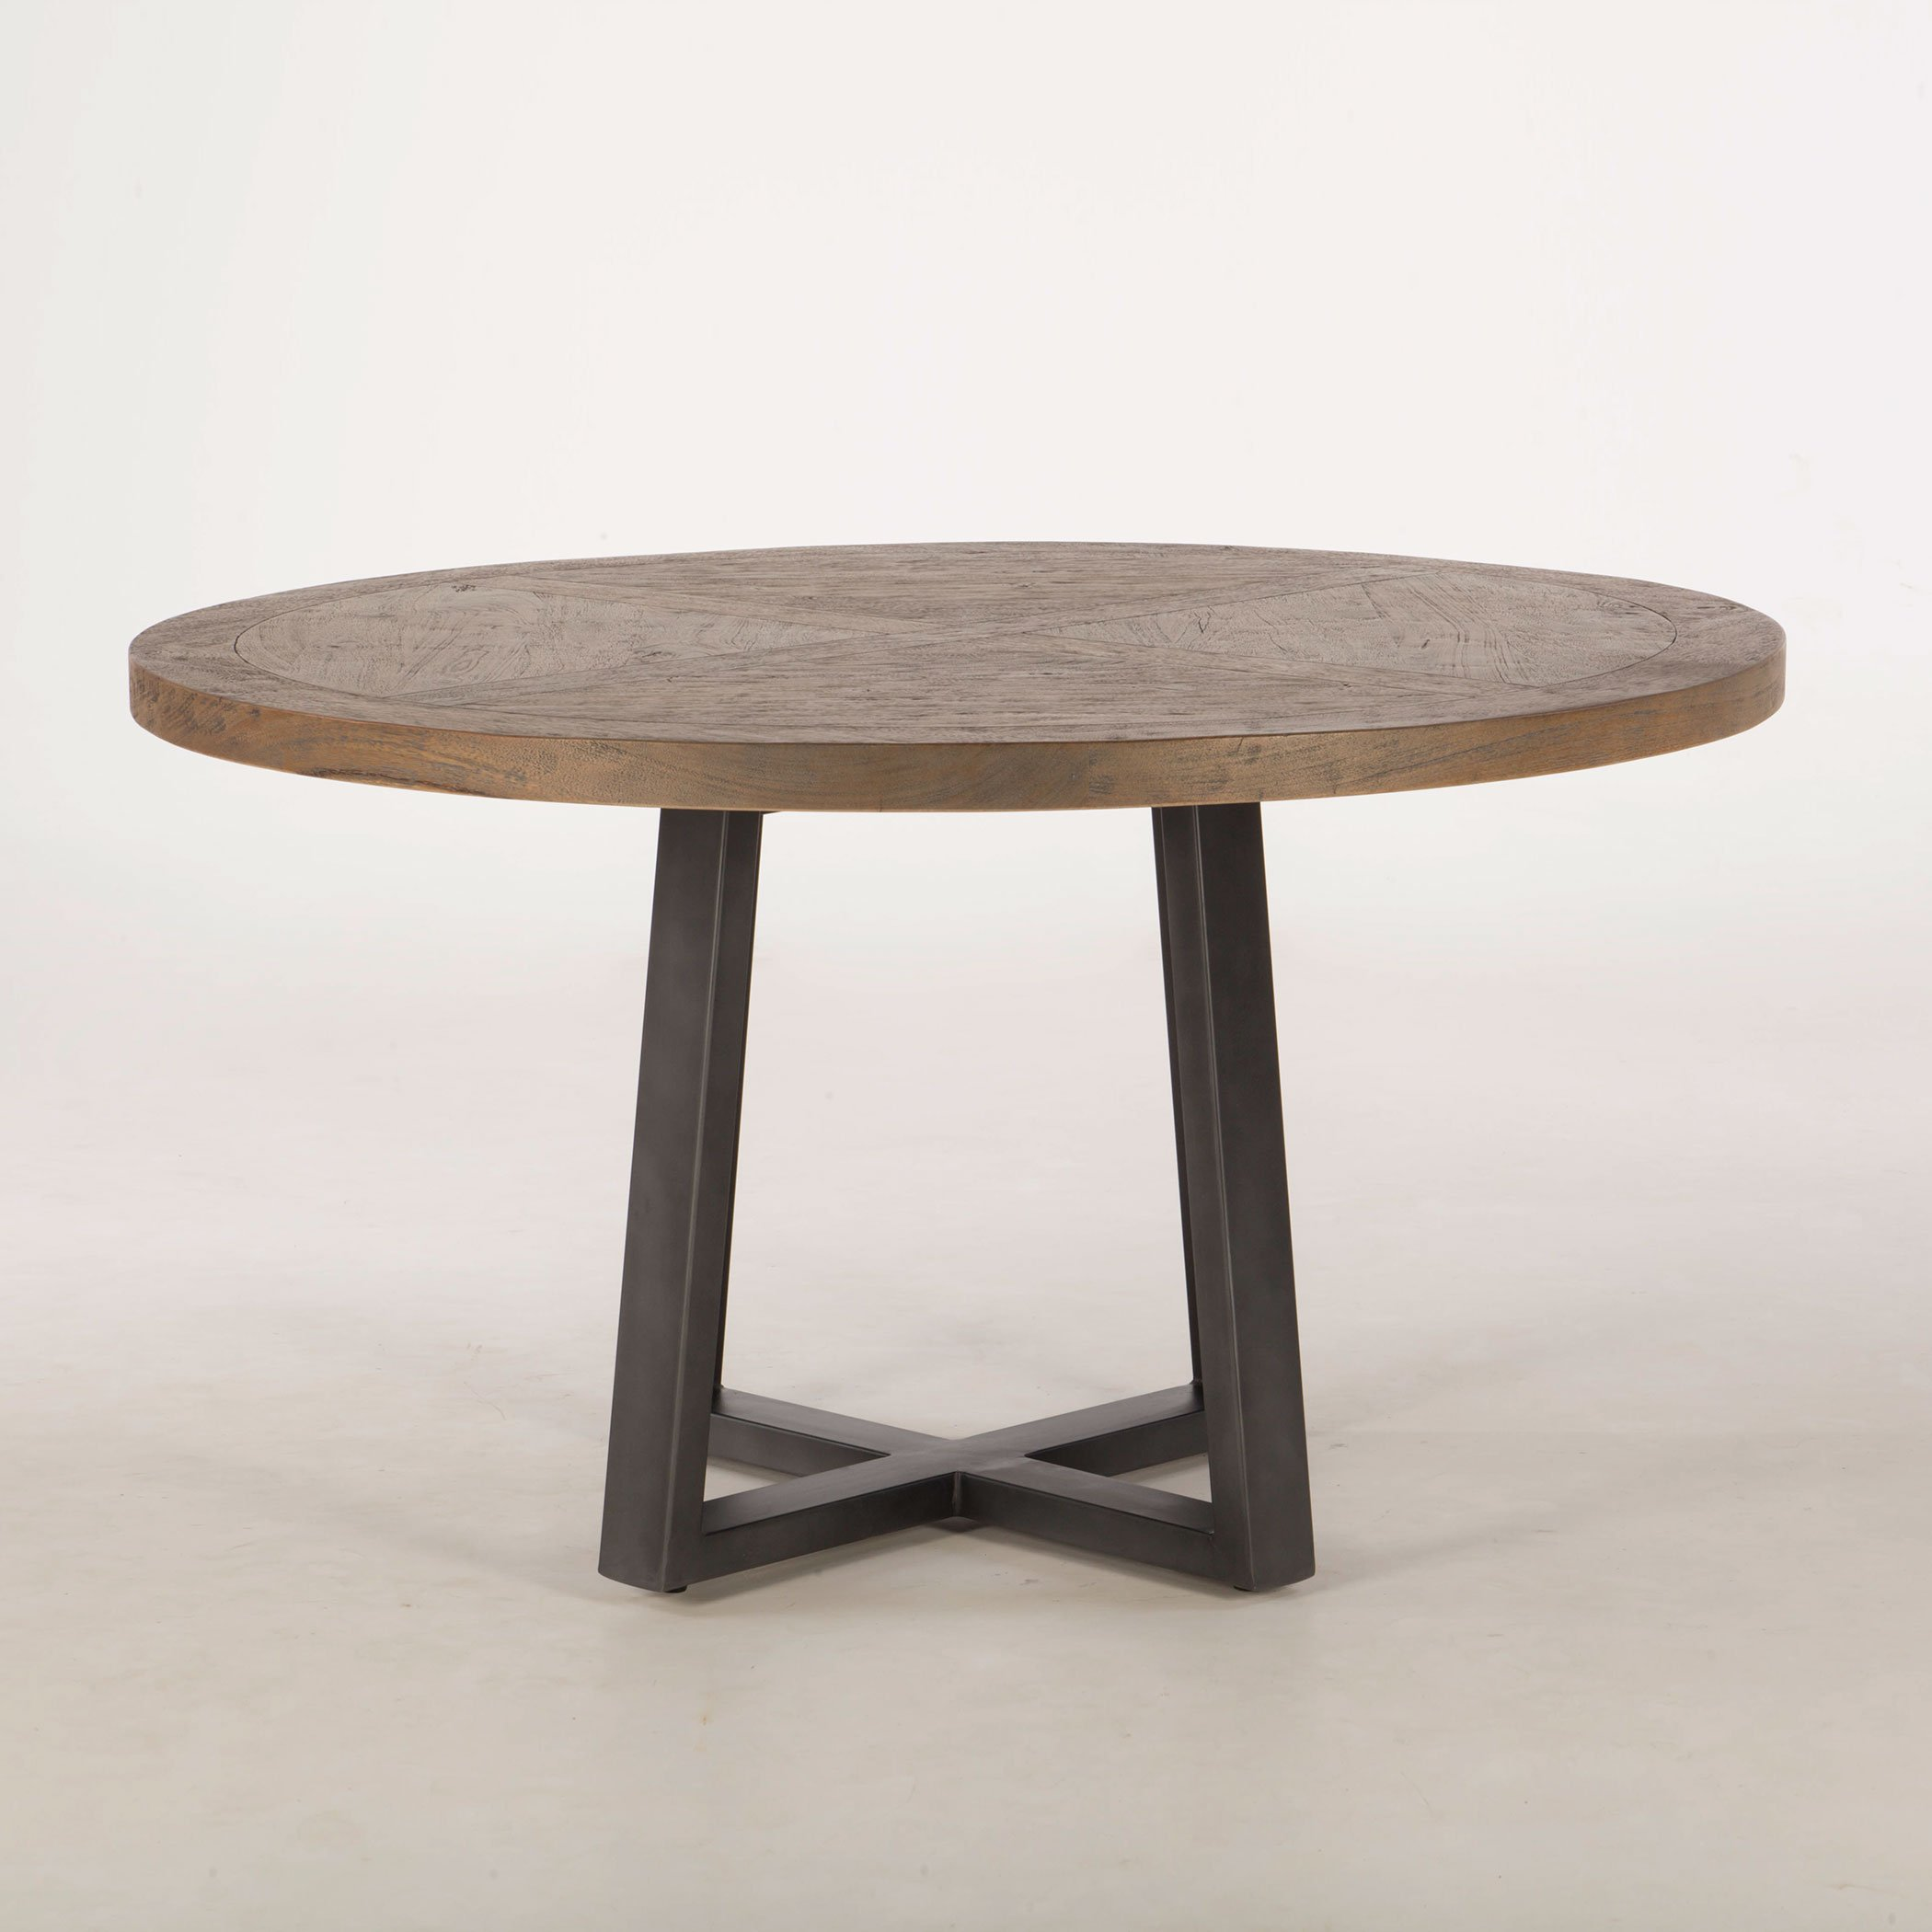 edinburgh weathered mango wood round table world interiors flb accent tablecloth for end with shelf underneath oak floor threshold cream bedside lamps bistro bar iron and chairs